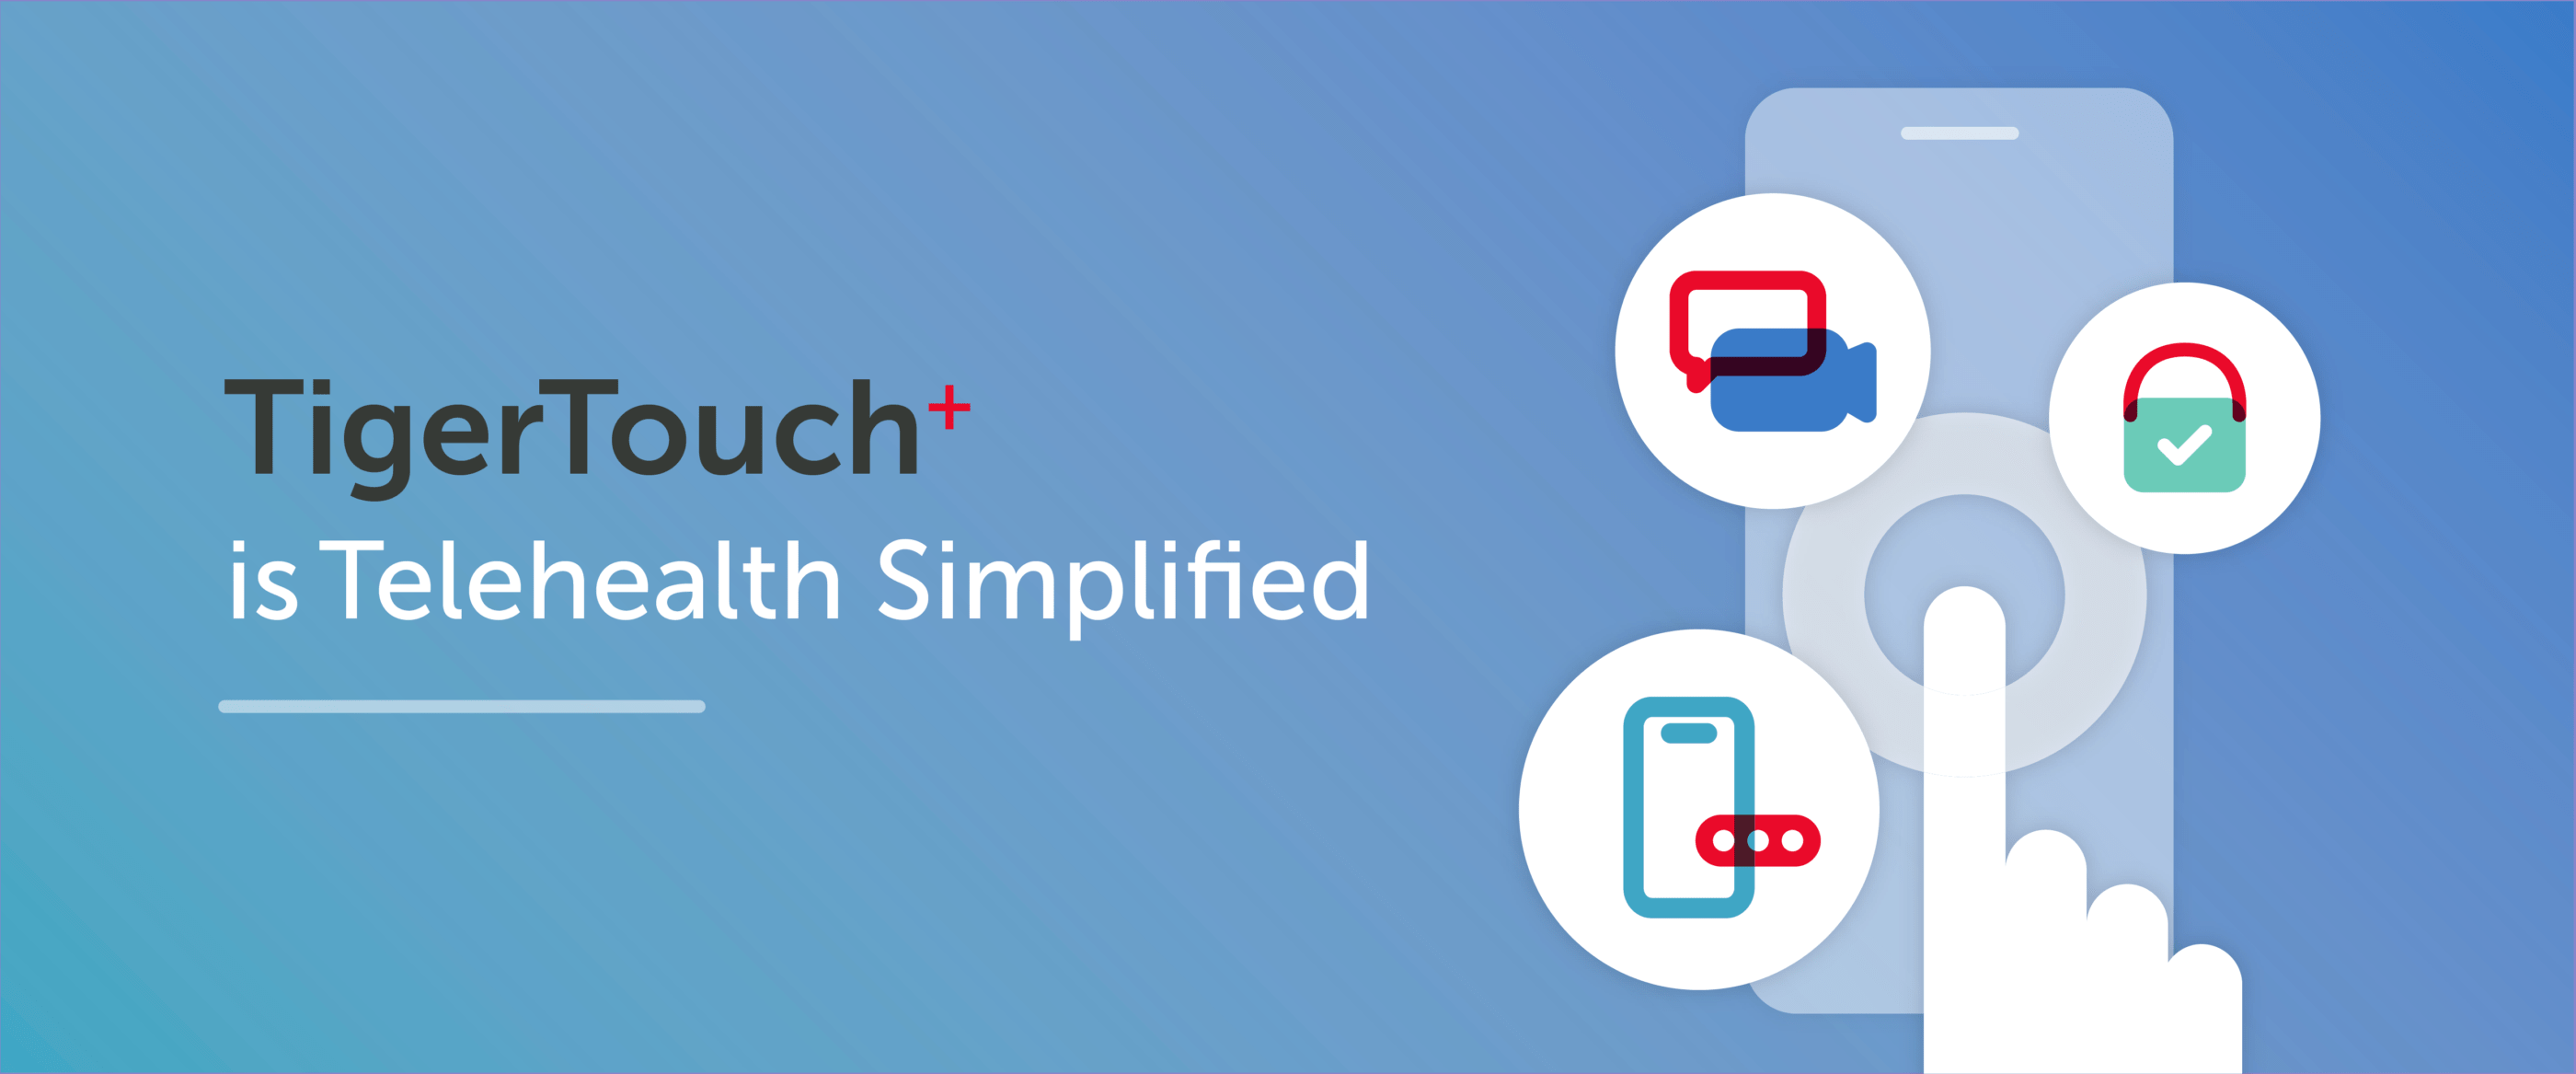 TigerTouch⁺ Is Telehealth Simplified